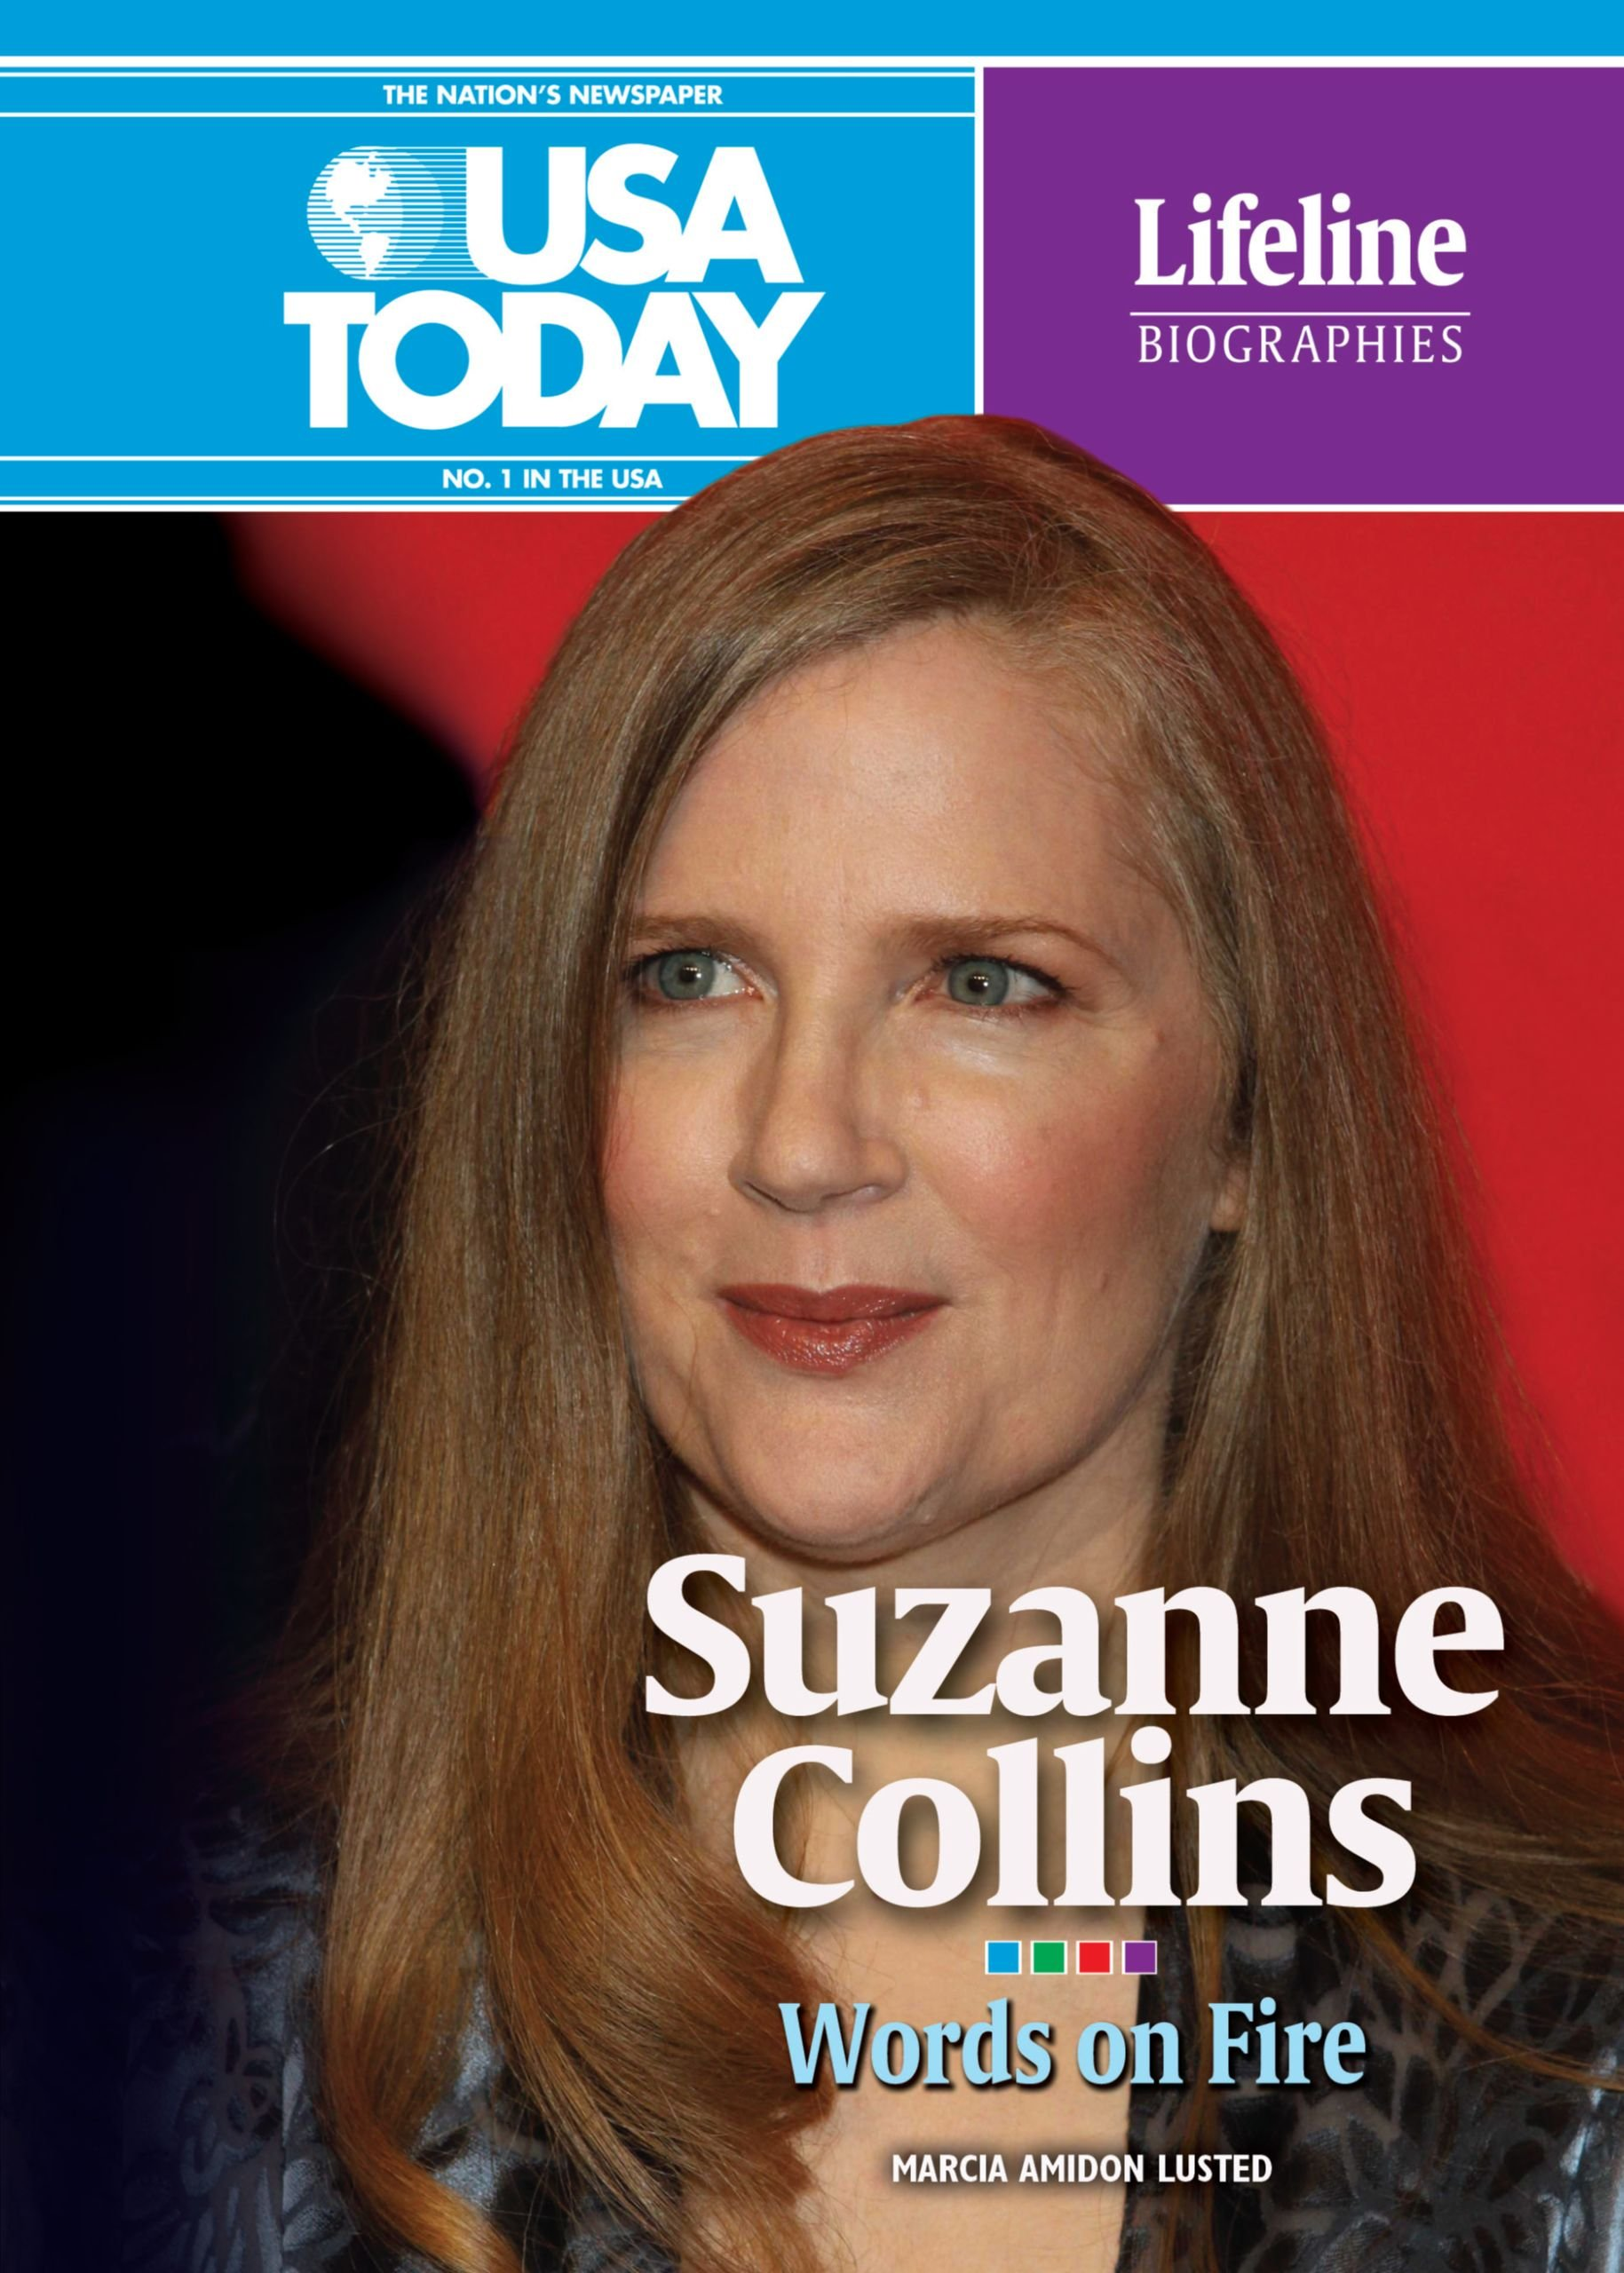 Suzanne Collins Words On Fire Usa Today Lifeline Biographies